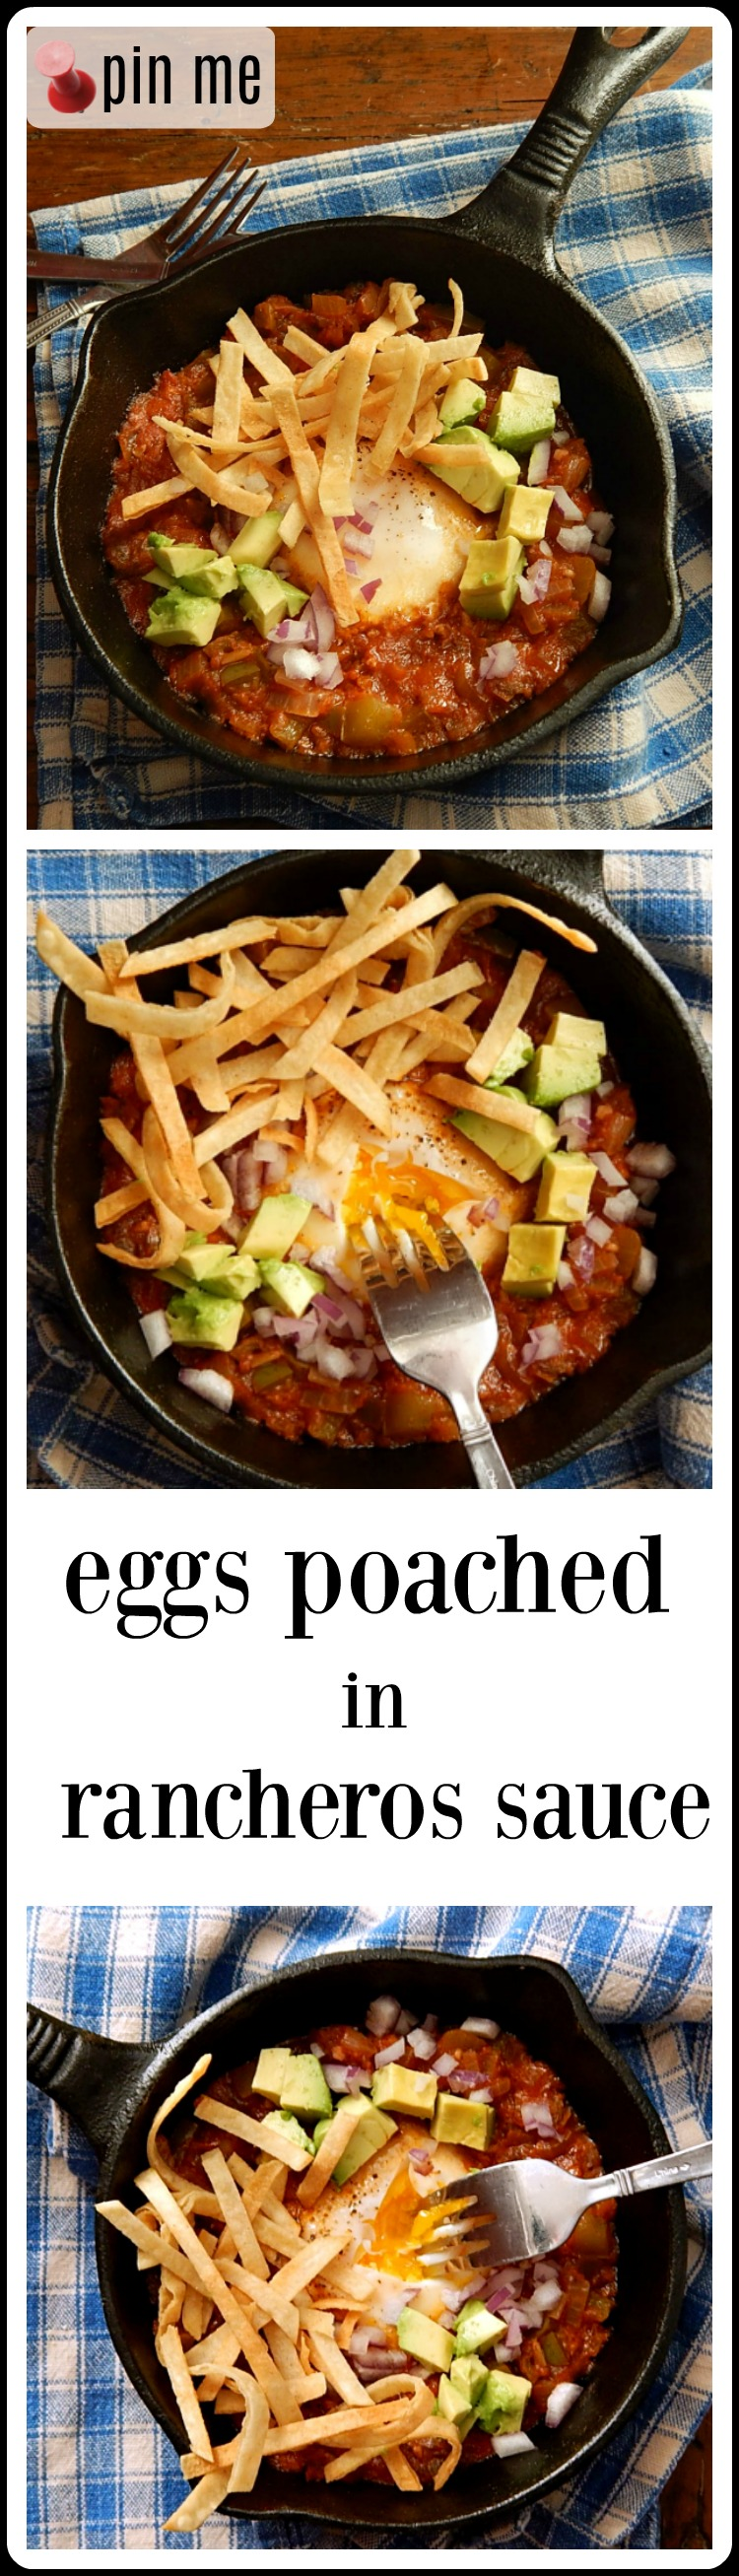 Eggs Poached in Rancheros Sauce is a quick, easy skillet breakfast (that's just as good for brinner). Cozy enough for family & fun enough for guests. #EggsRancherosSauce #EggsPoachedRancherosSauce